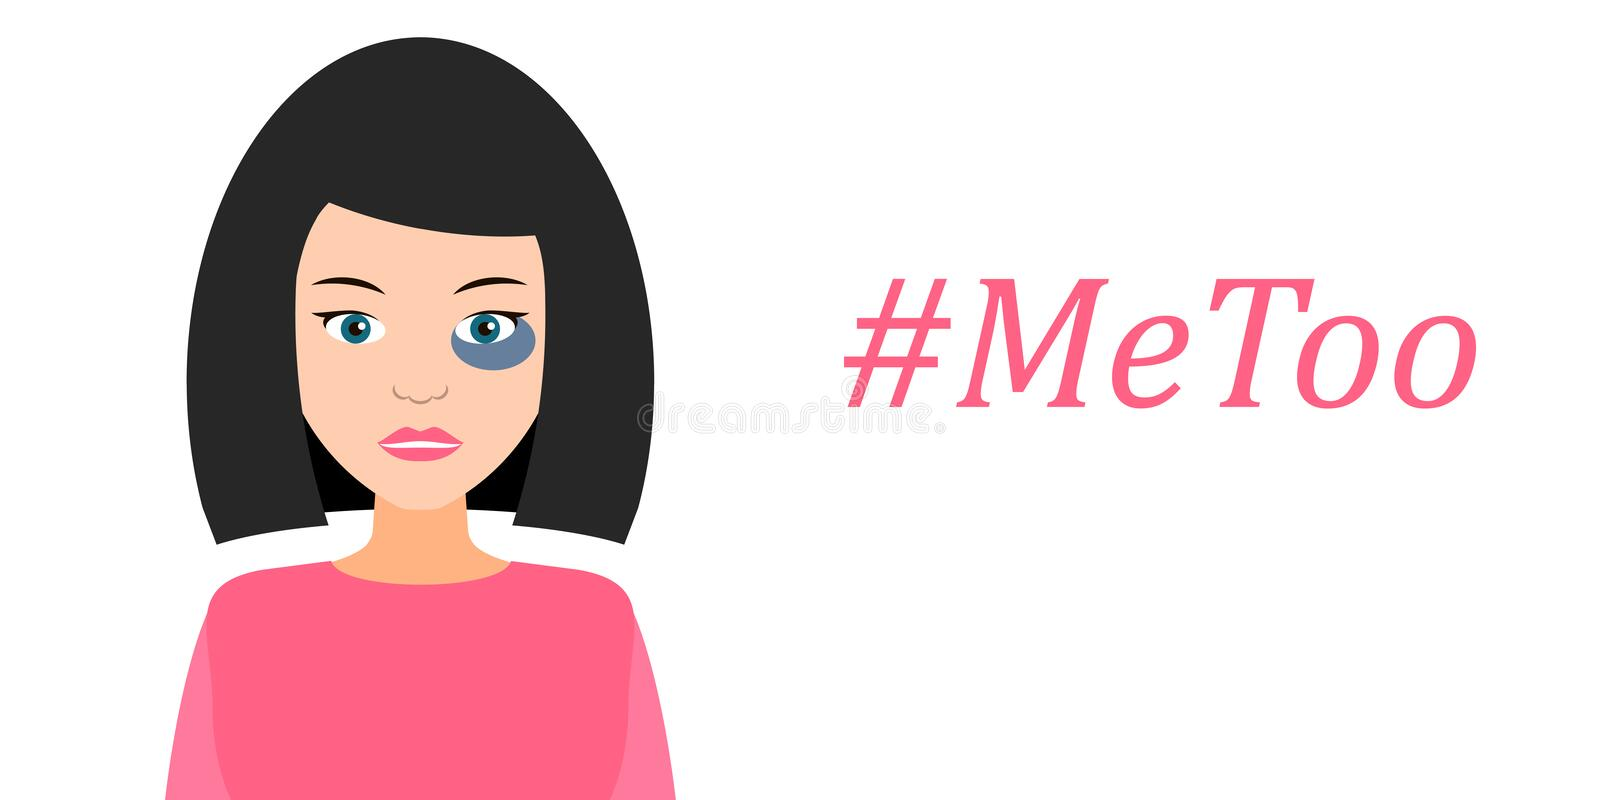 Hashtag Me Too. Girl with the bruise. Vector illustration. vector illustration